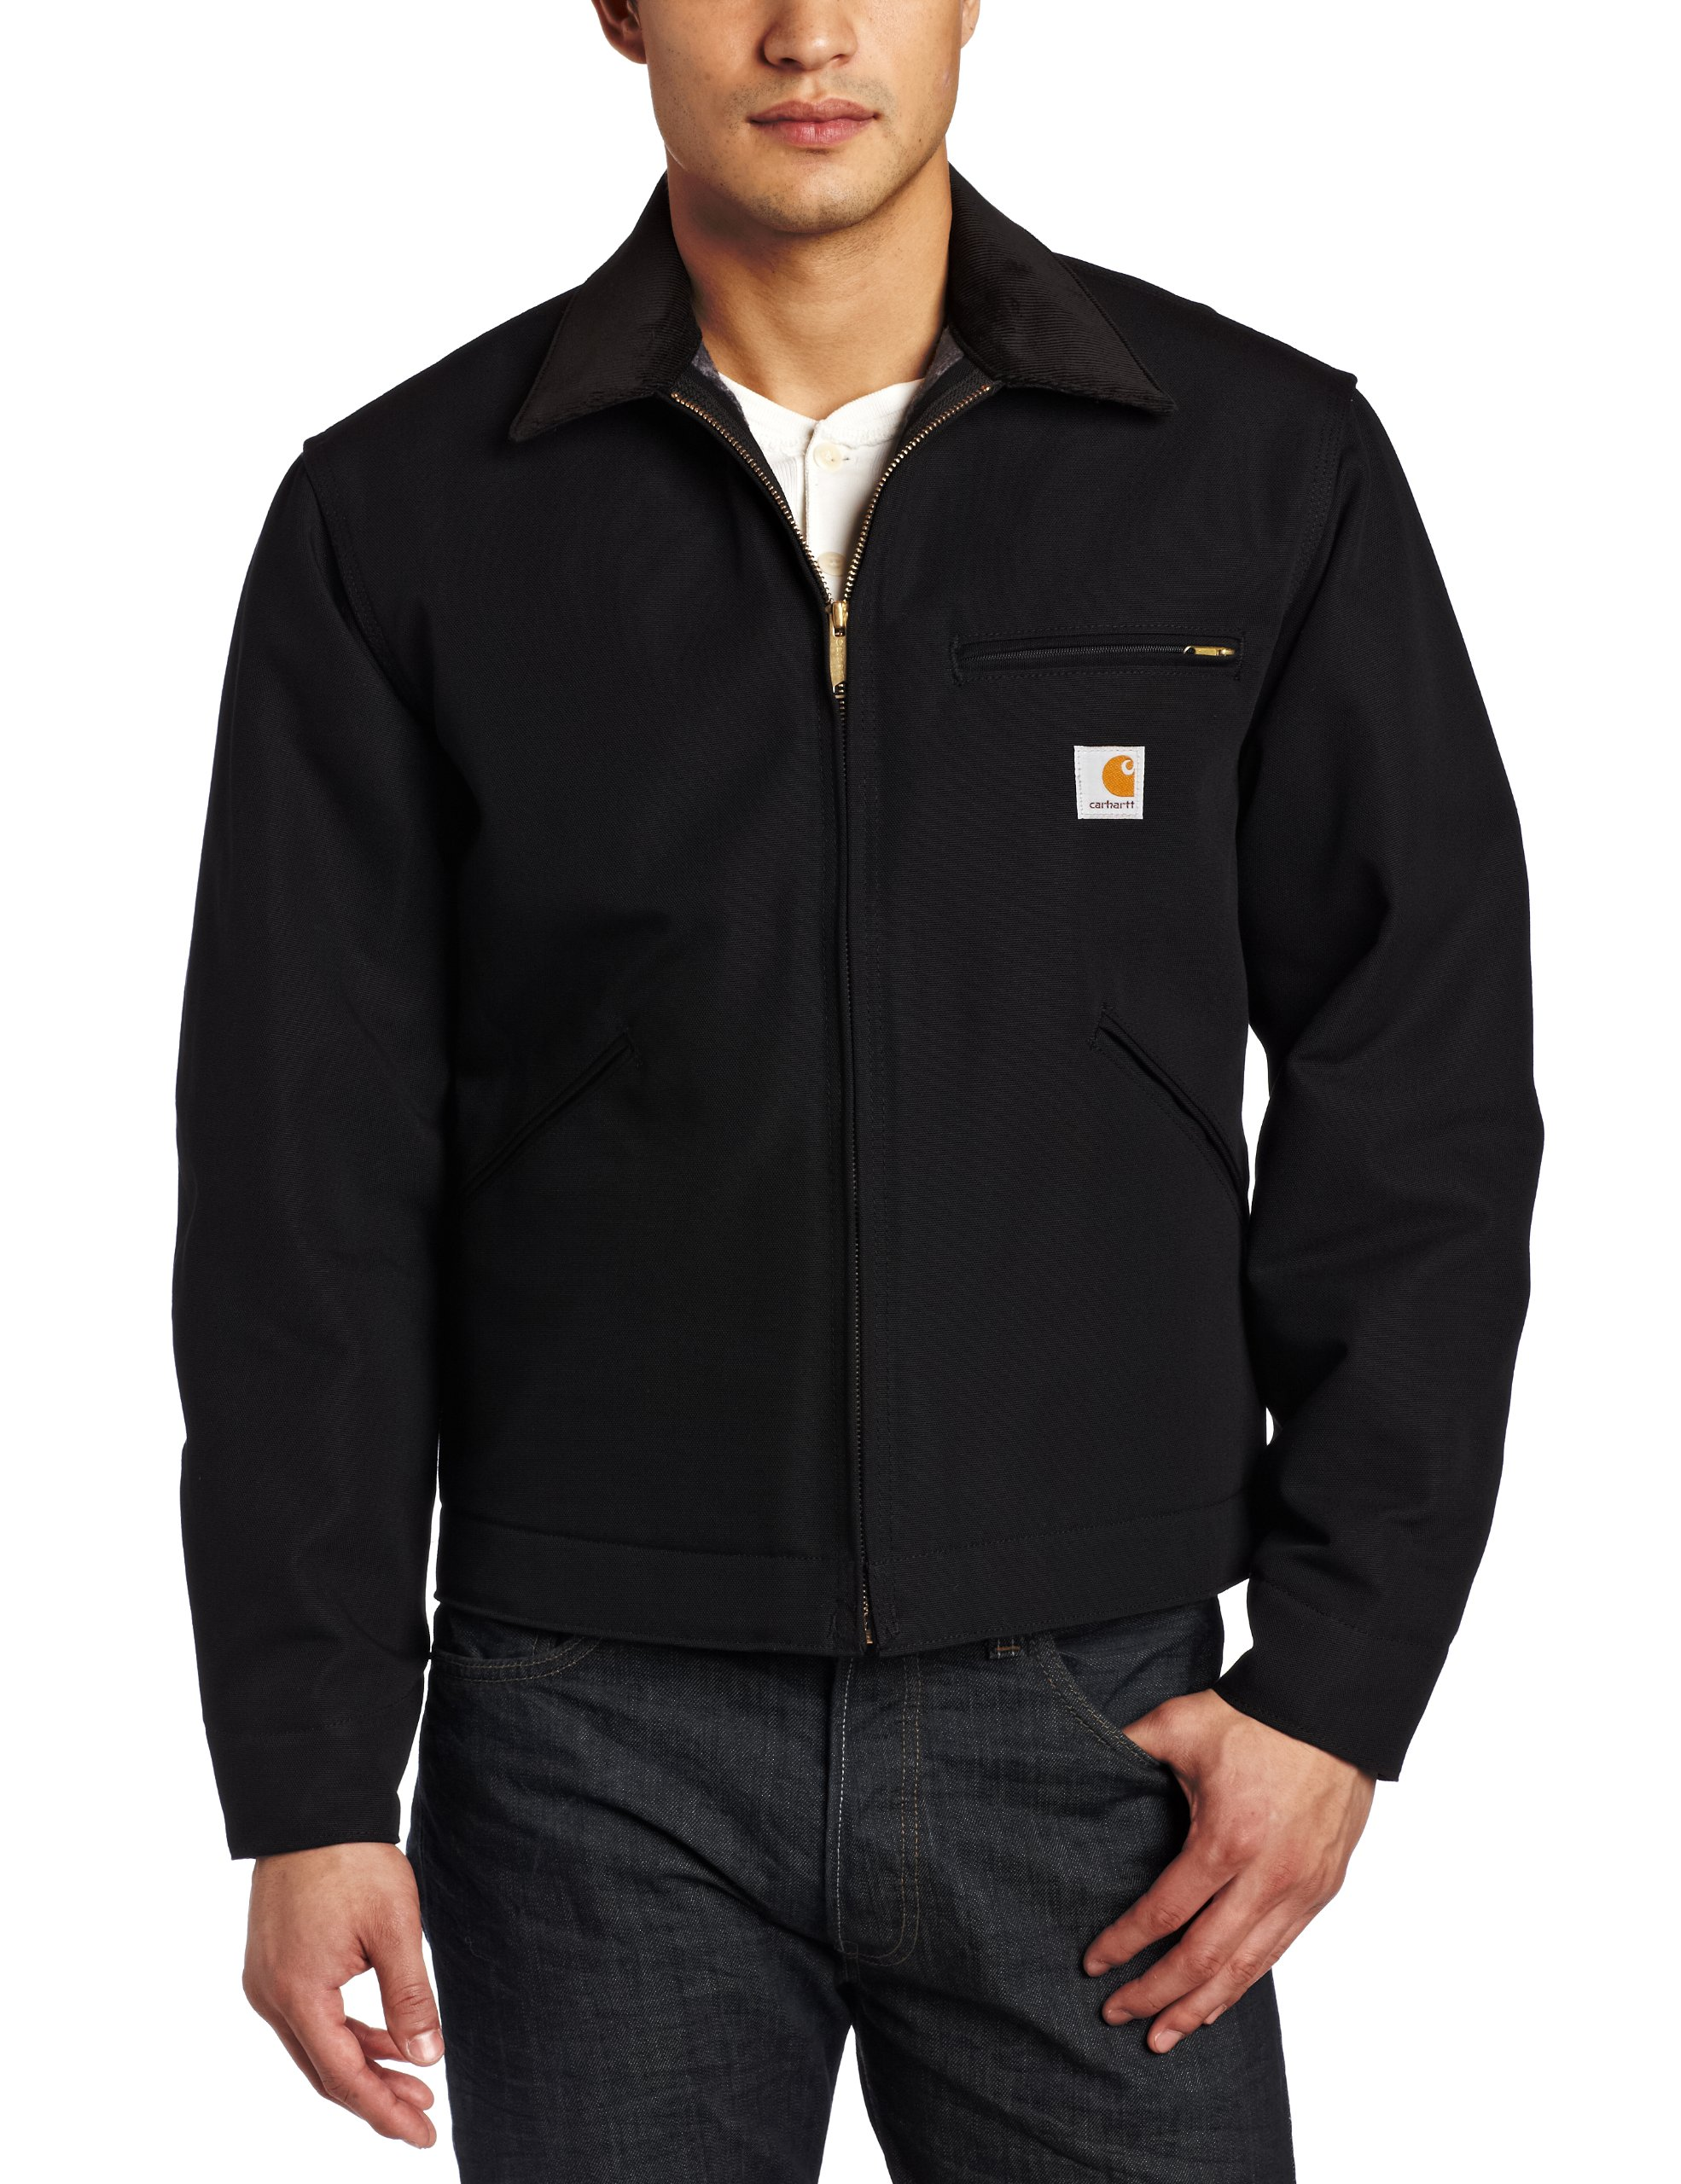 Carhartt Men's Weathered Duck Detroit Jacket J001,Black,Medium by Carhartt